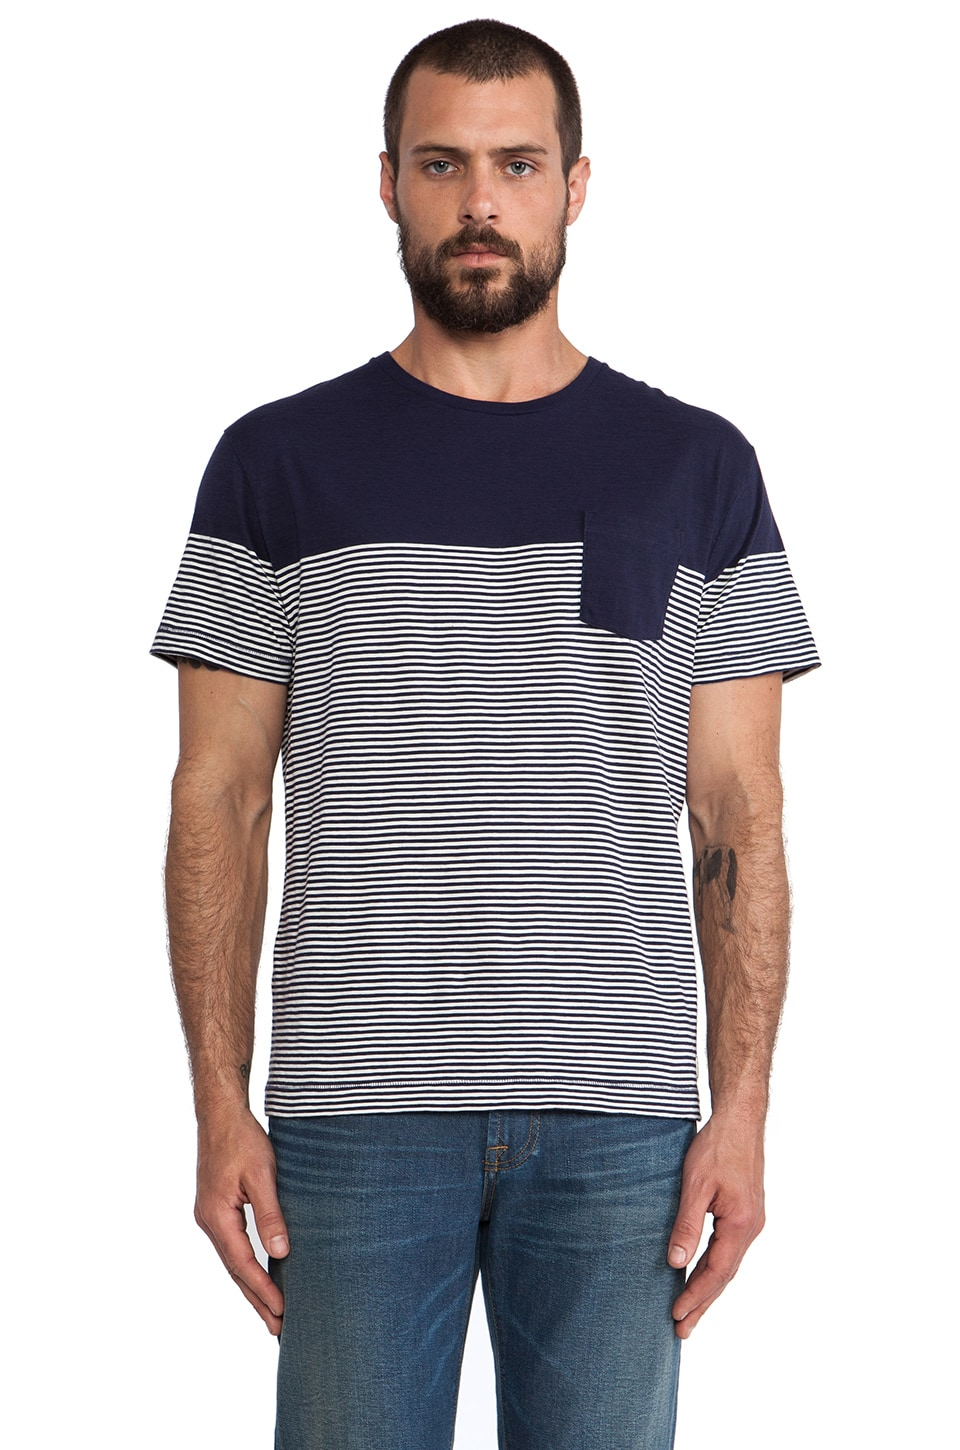 Gant Barstripe T-Shirt in Cream